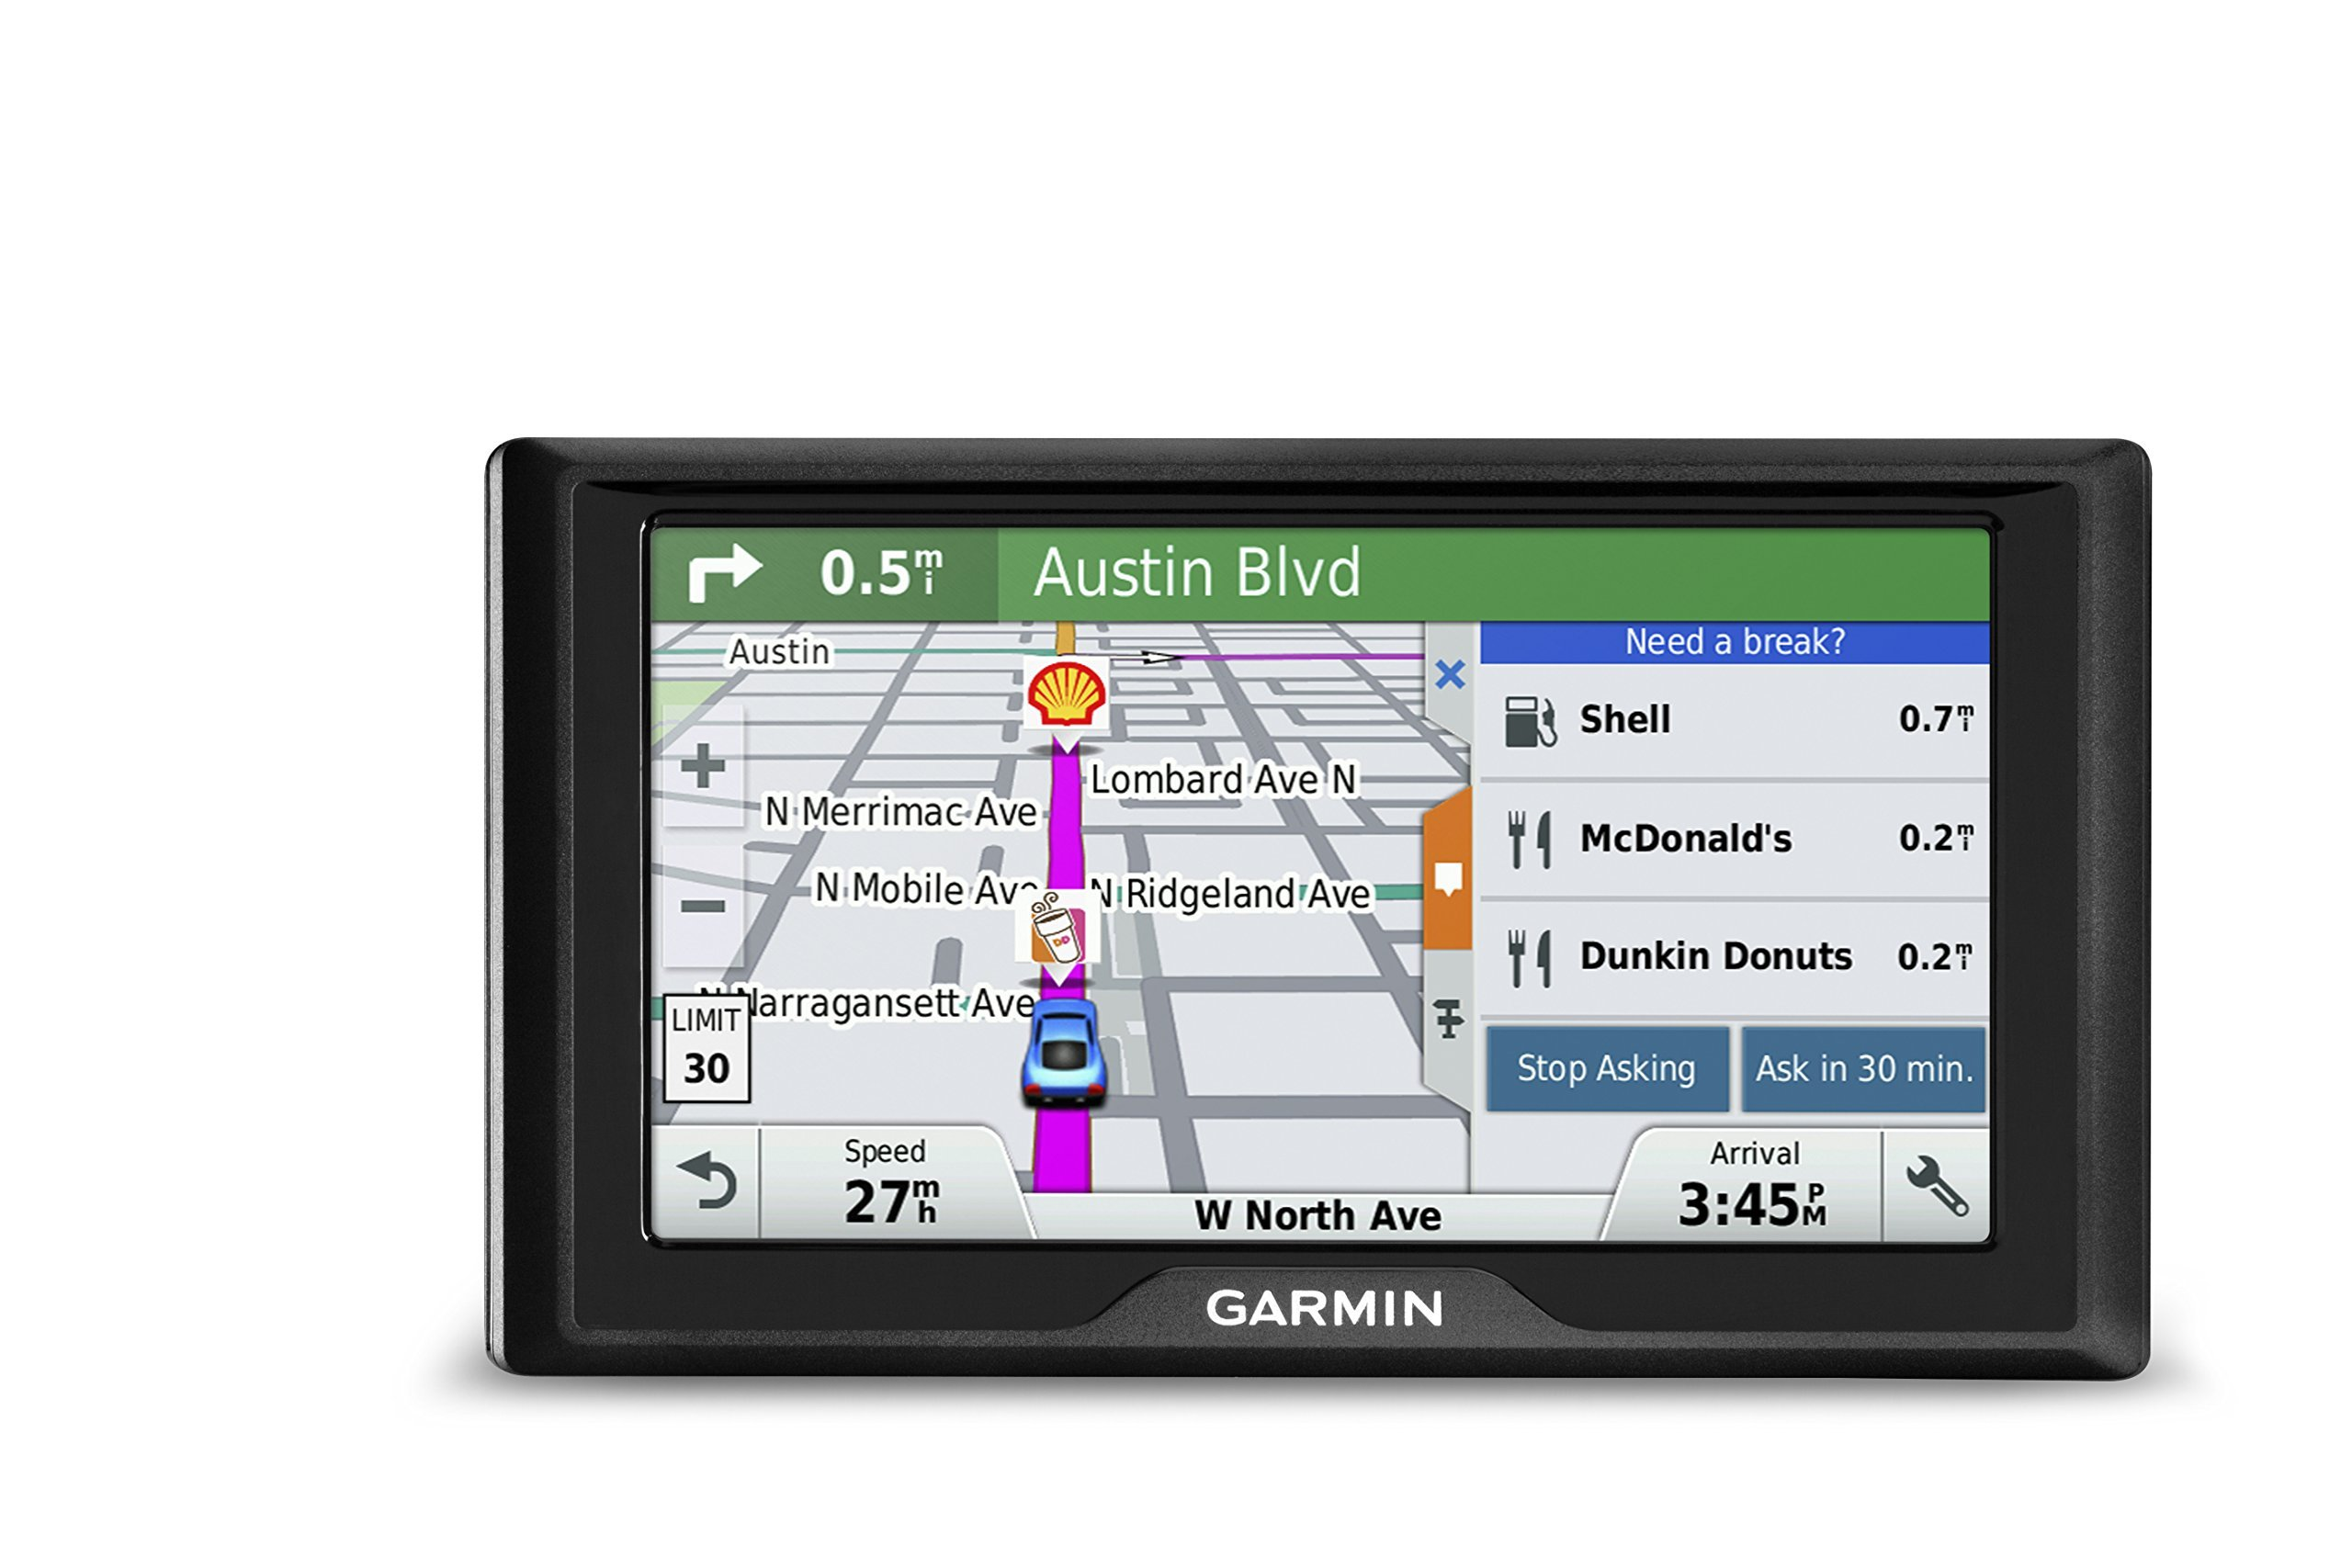 Garmin Drive 60 USA LM GPS Navigator System with Lifetime Maps, Spoken Turn-By-Turn Directions, Direct Access, Driver Alerts, and Foursquare Data (Renewed) by Garmin